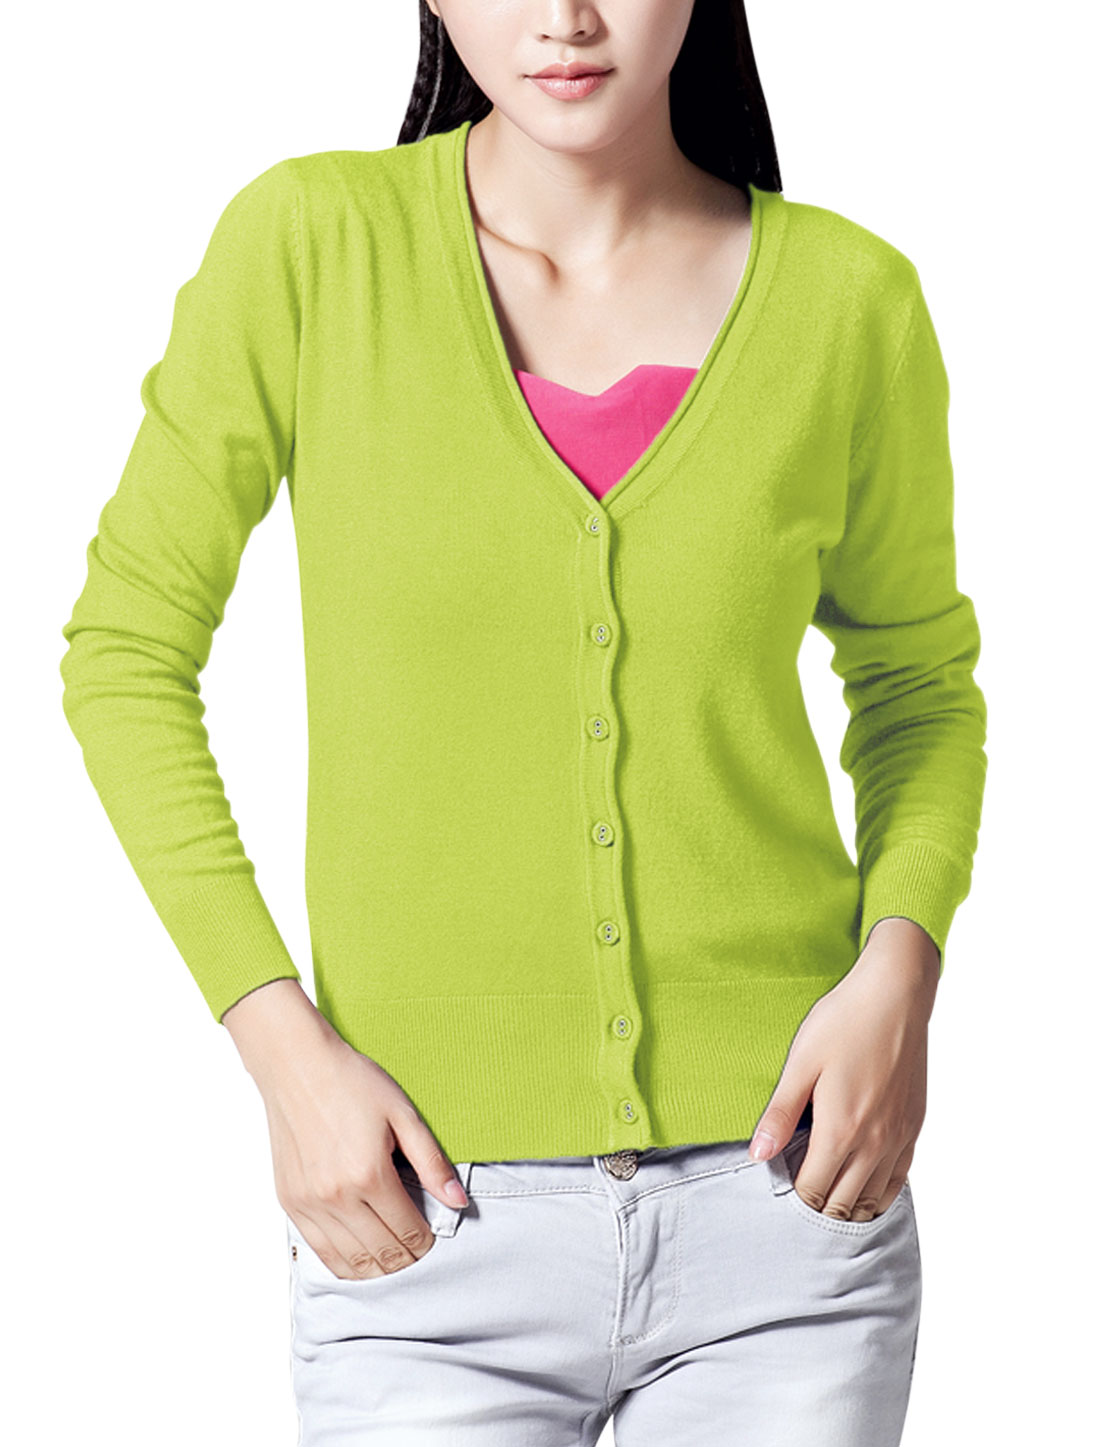 Slim Fit Ribbed Cuff w Hem Design Knit Cardigan for Lady Apple Green M